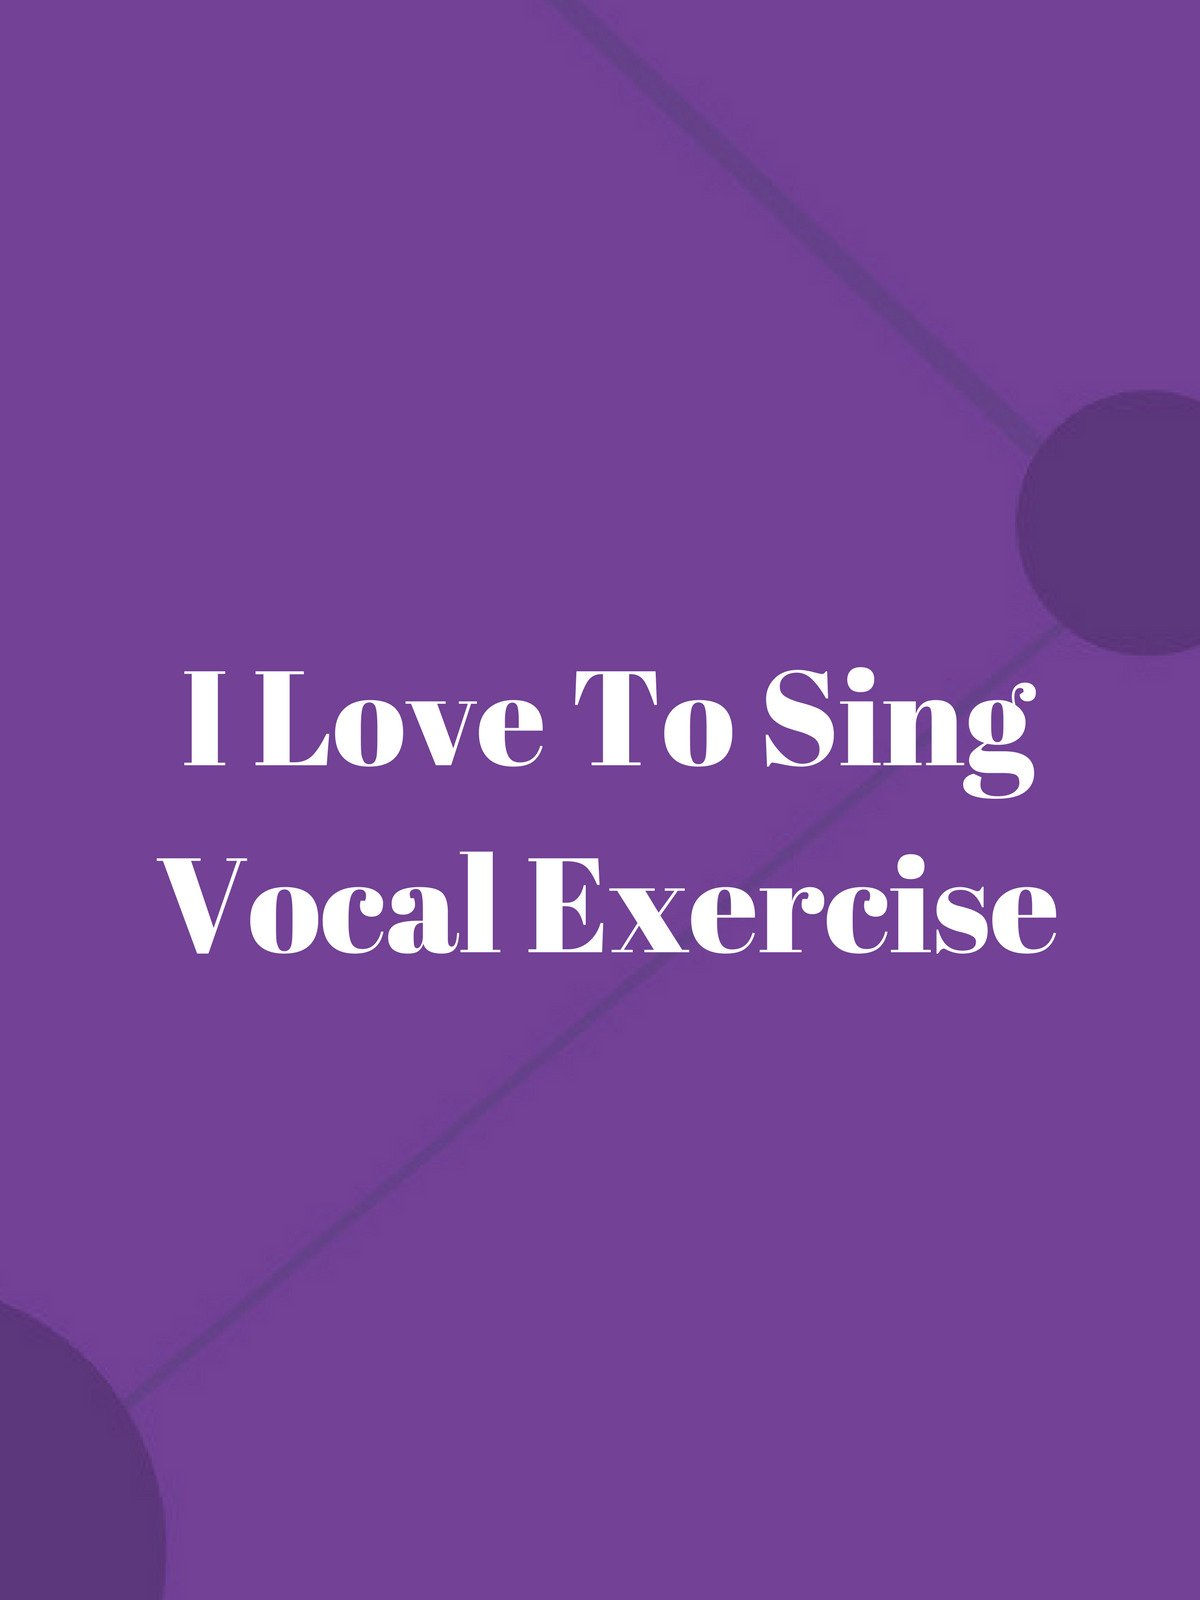 I Love To Sing Vocal Exercise